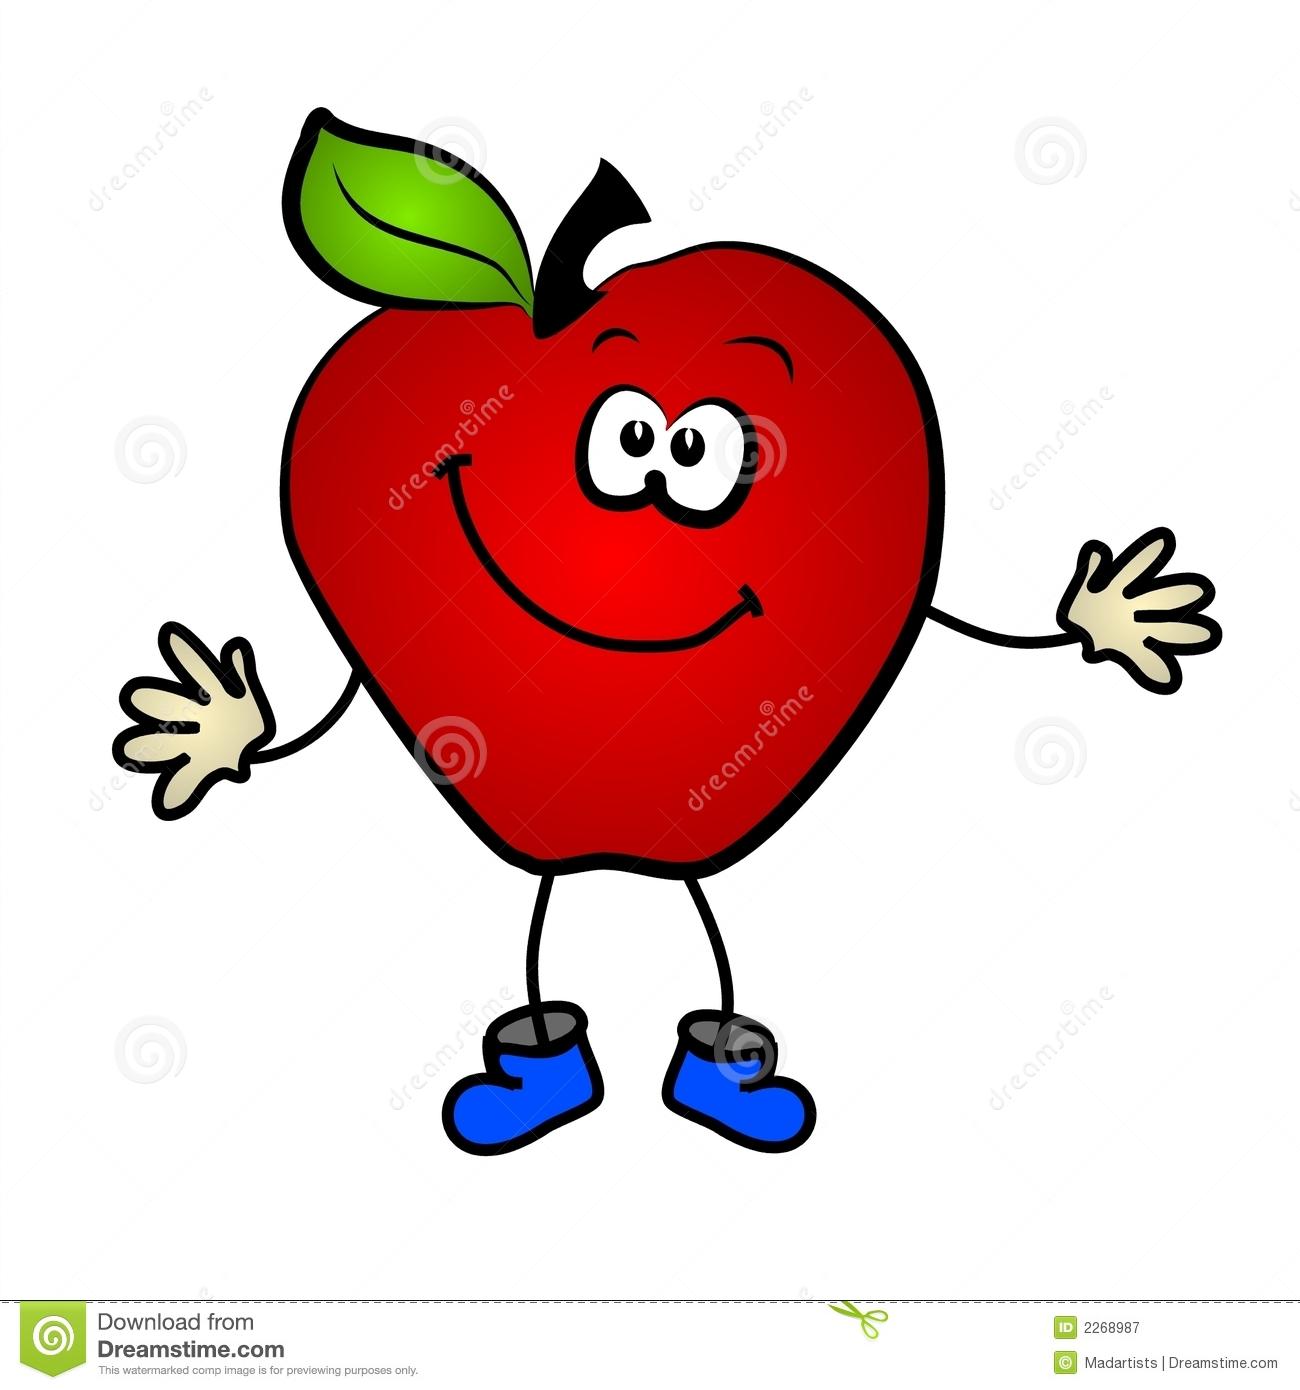 free smiling apple clipart - photo #3